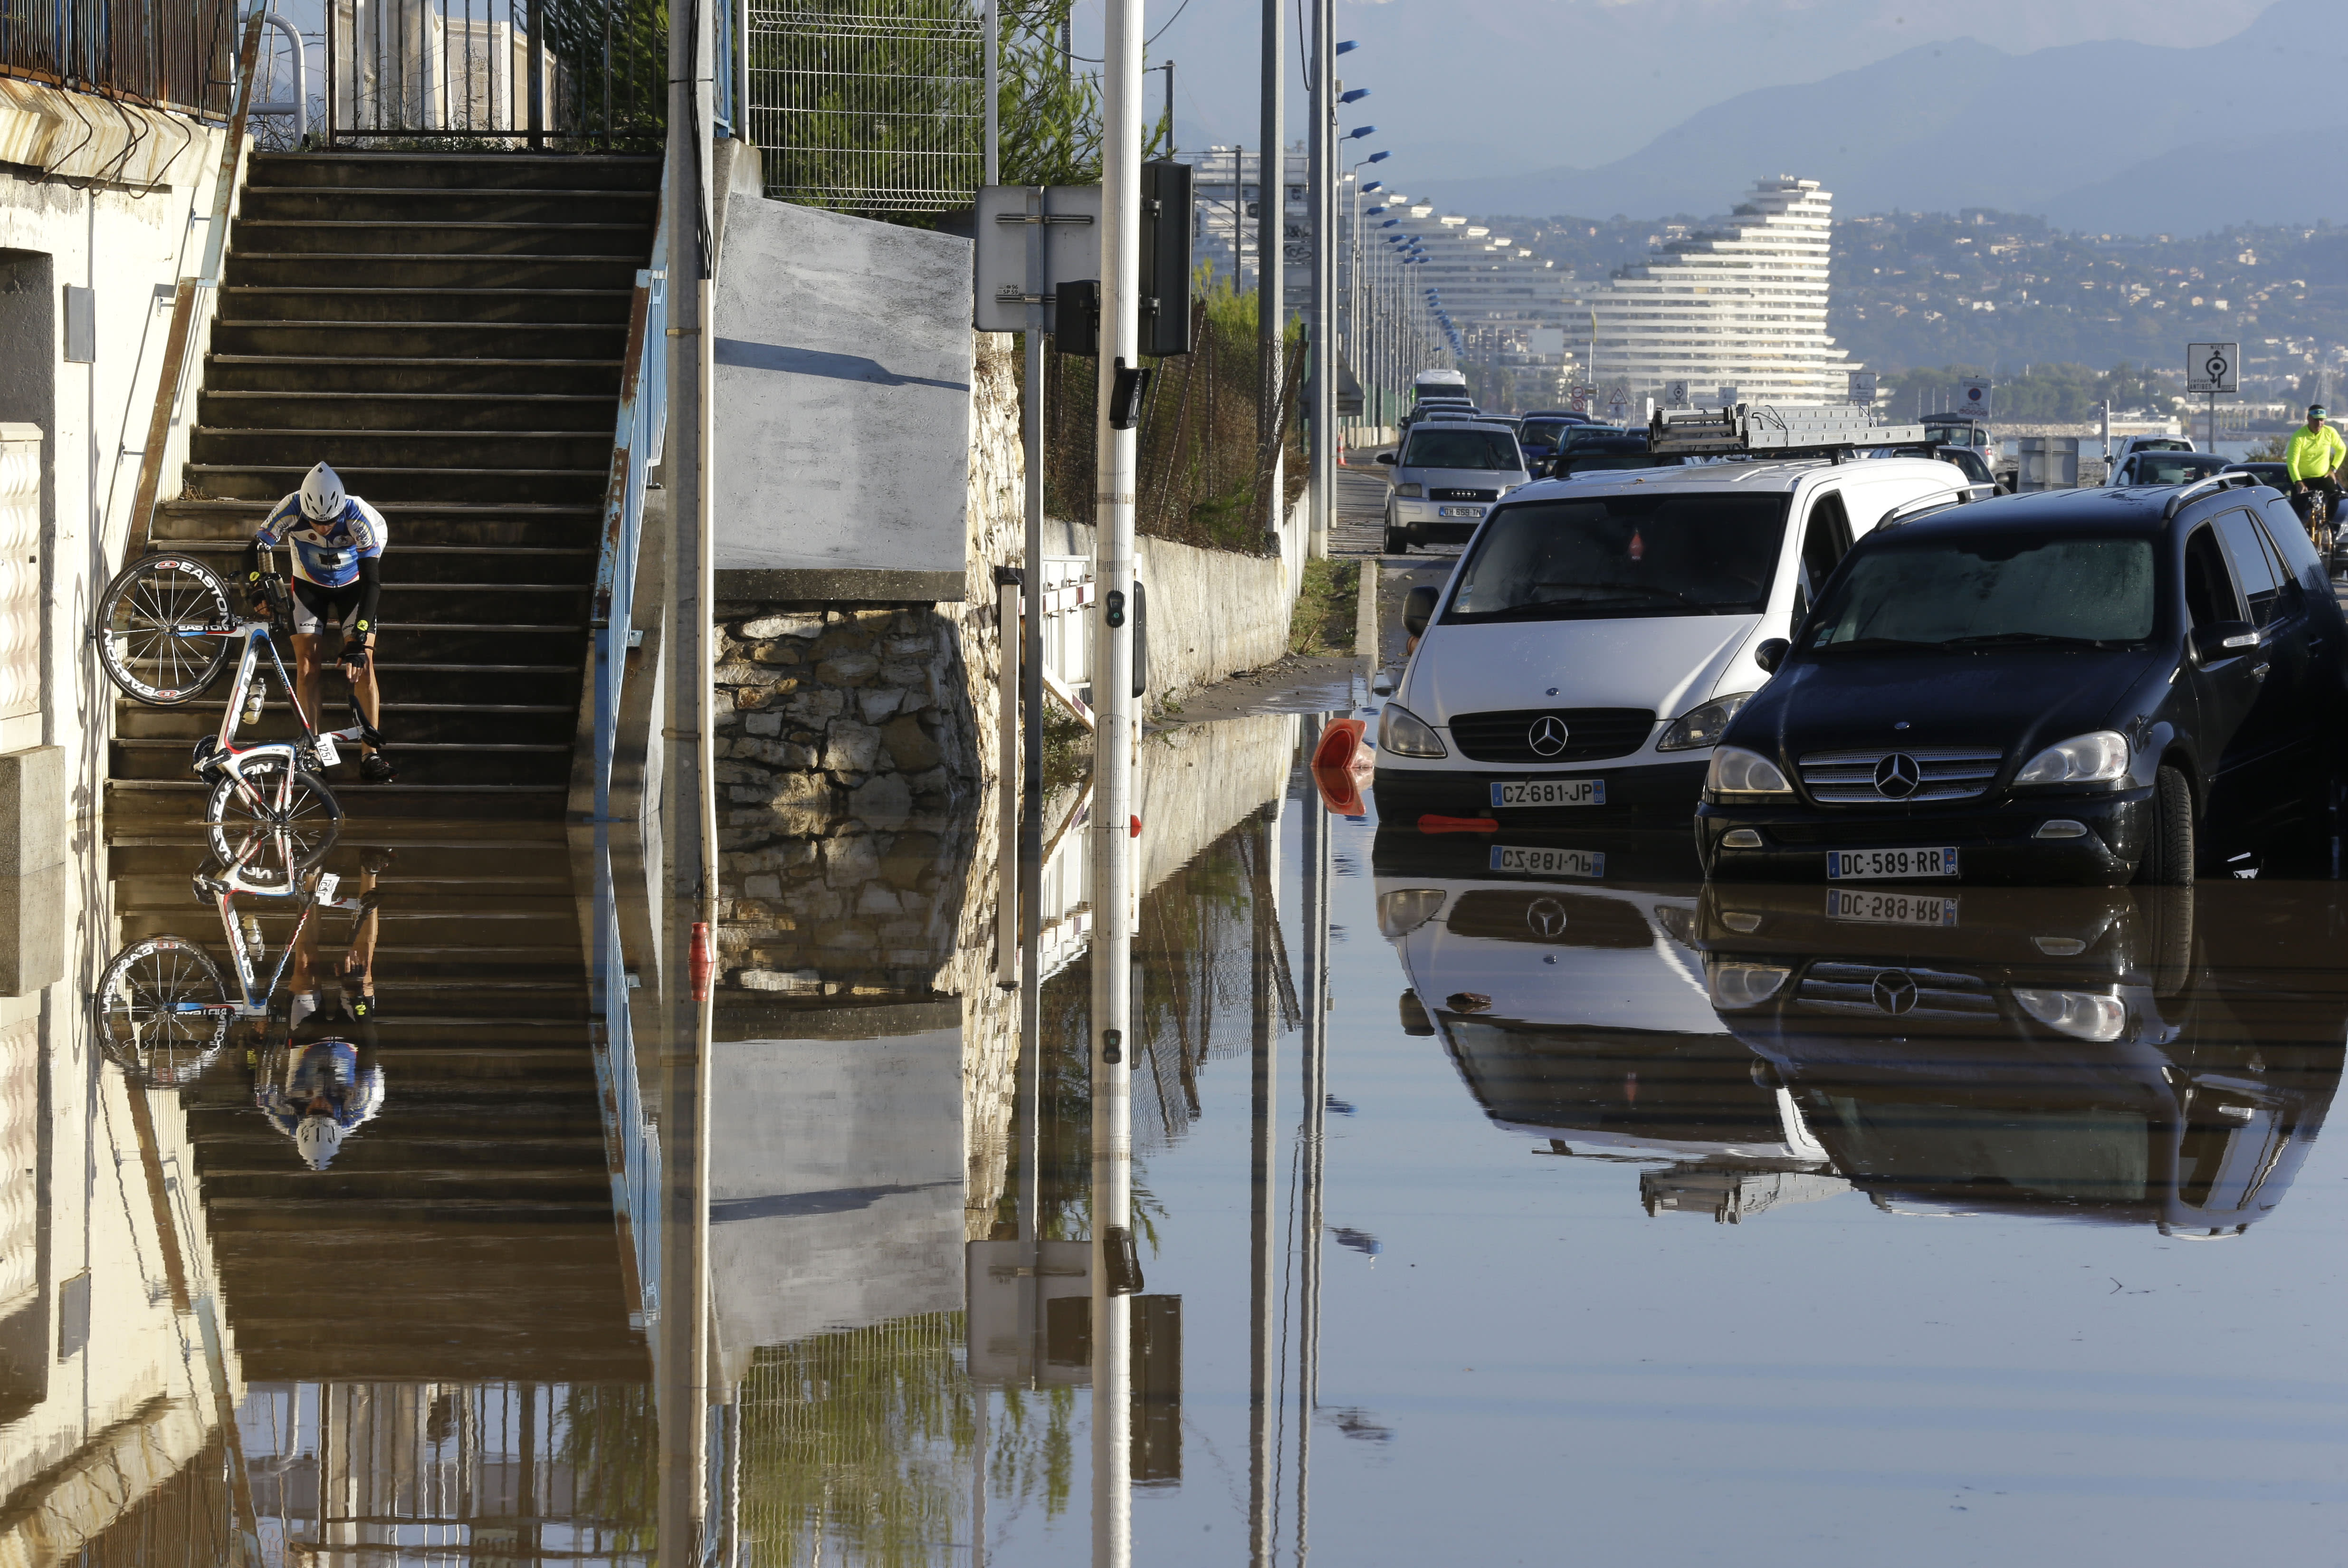 Flash floods on French Riviera kill at least 16